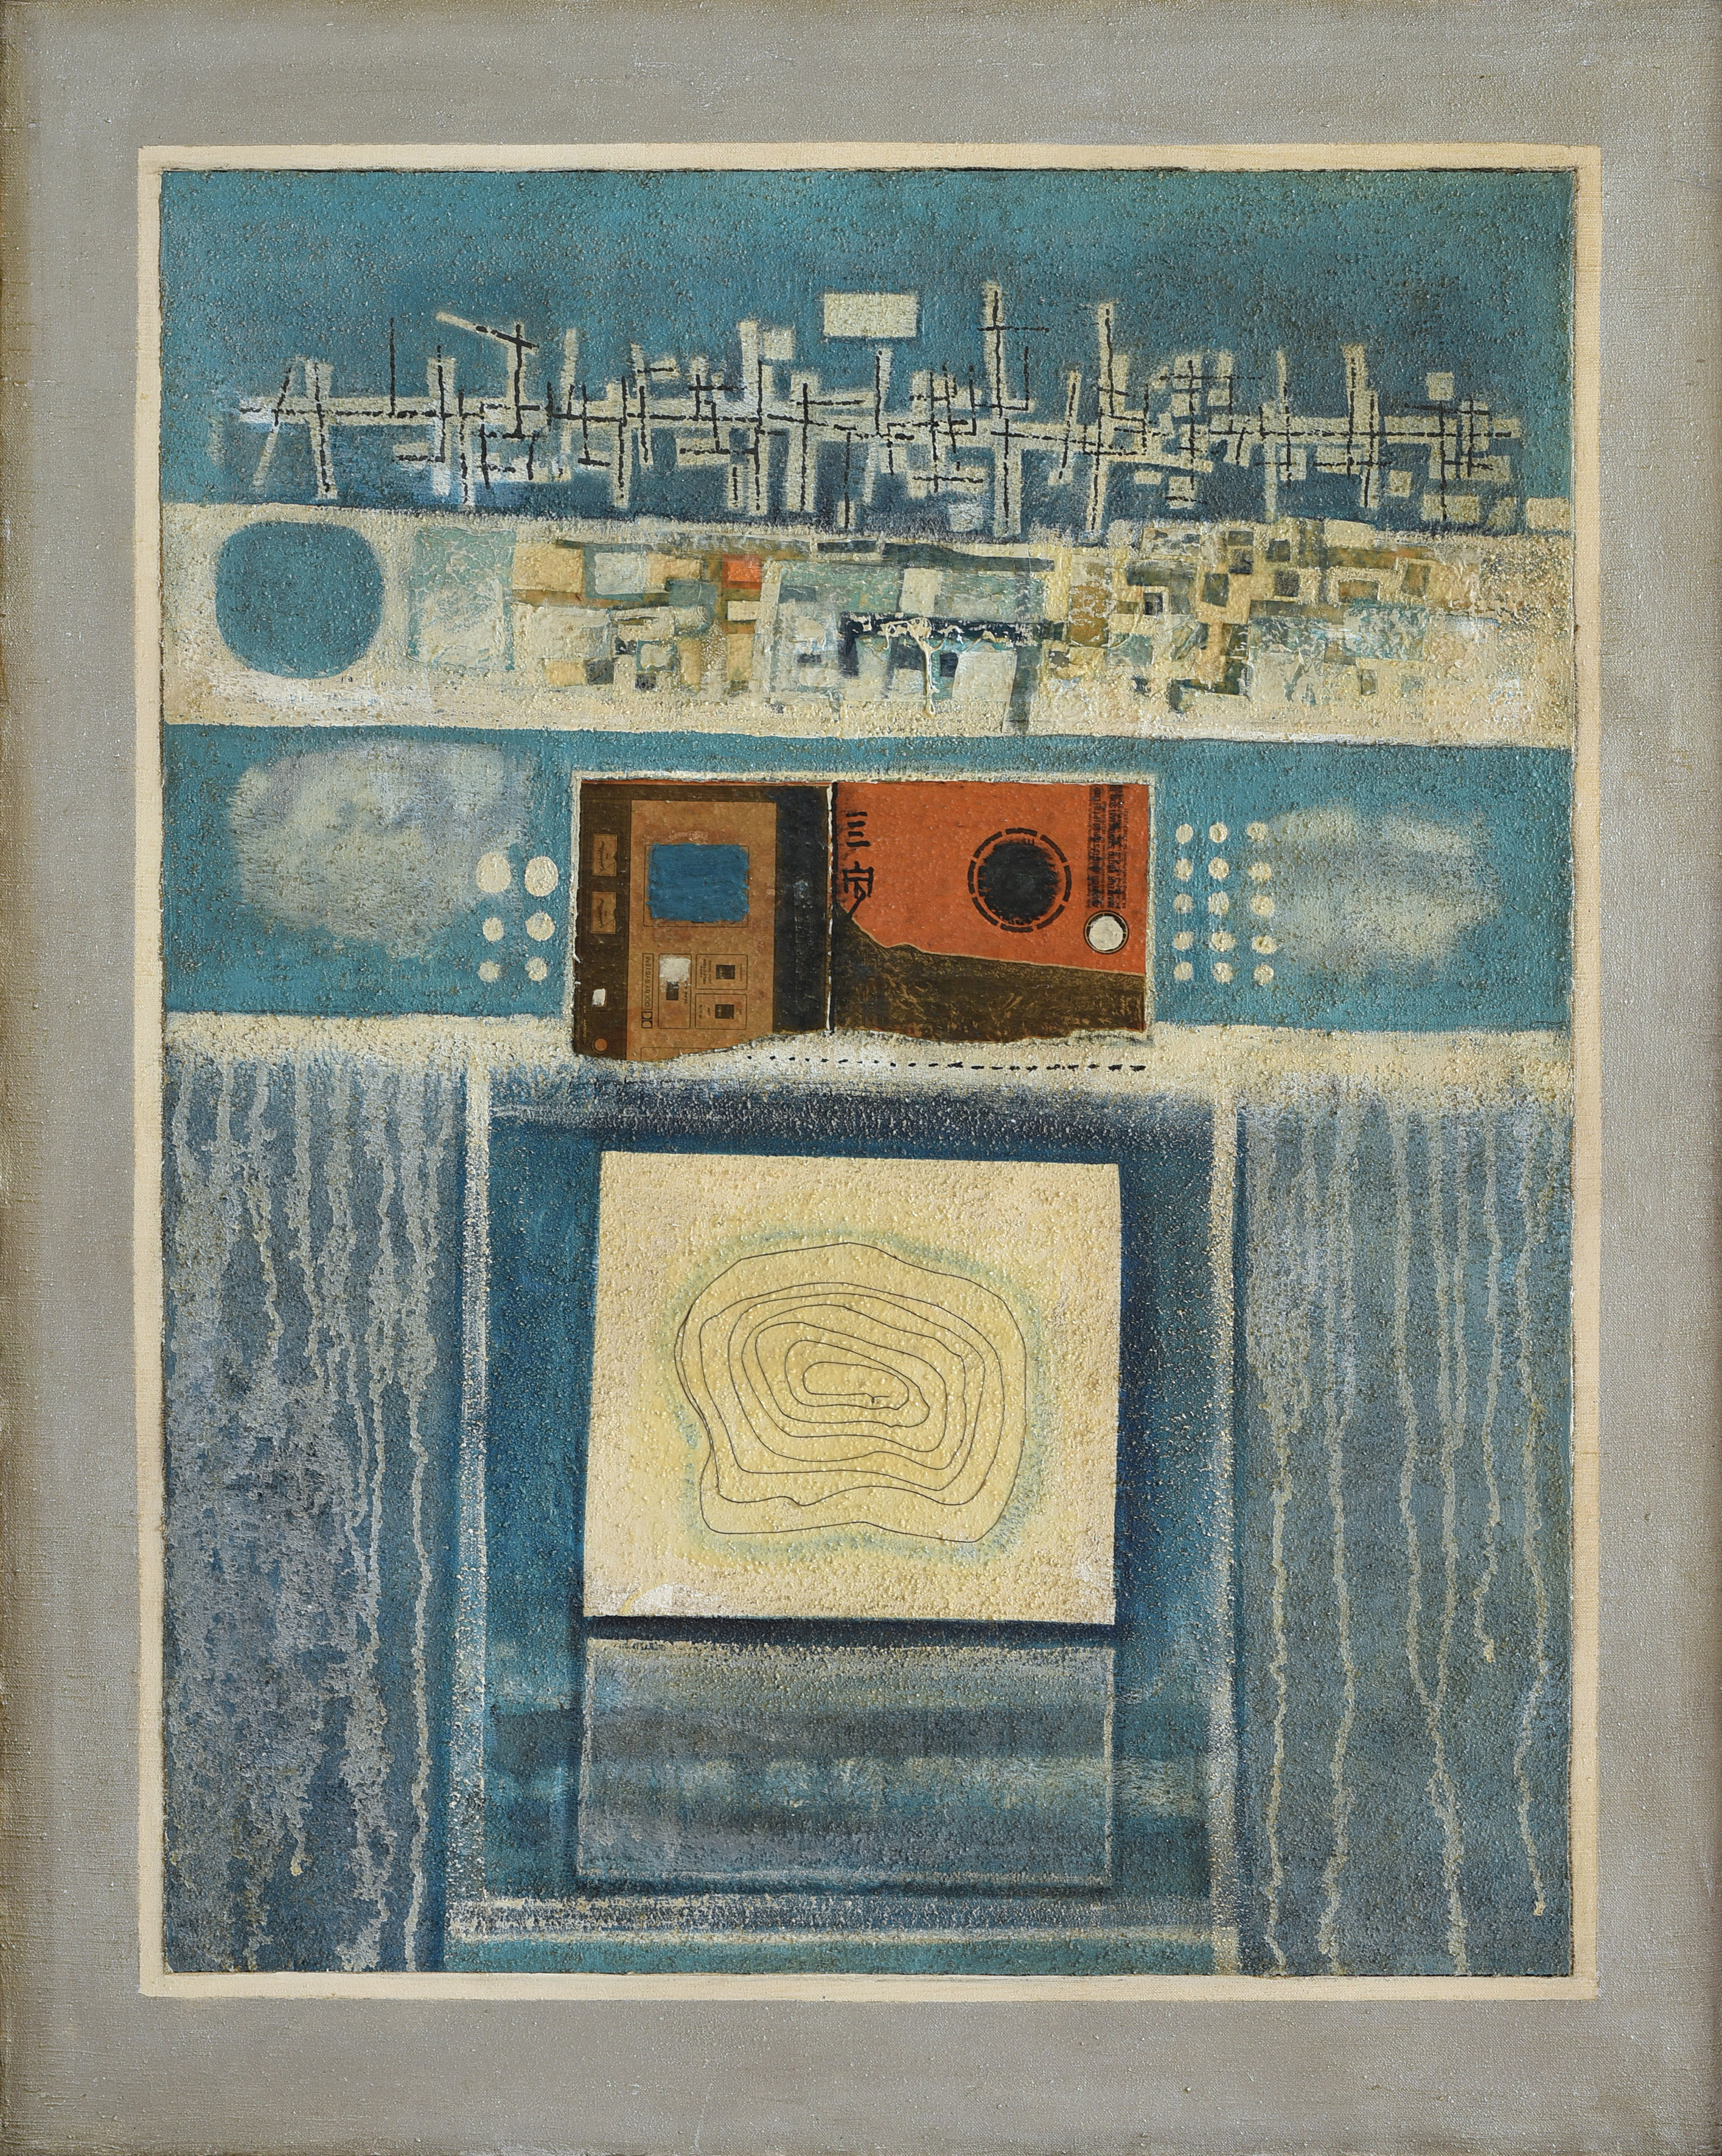 Cheong Soo Pieng, Blue Composition, mixed media on canvas, 101 x 81 cm, 1974